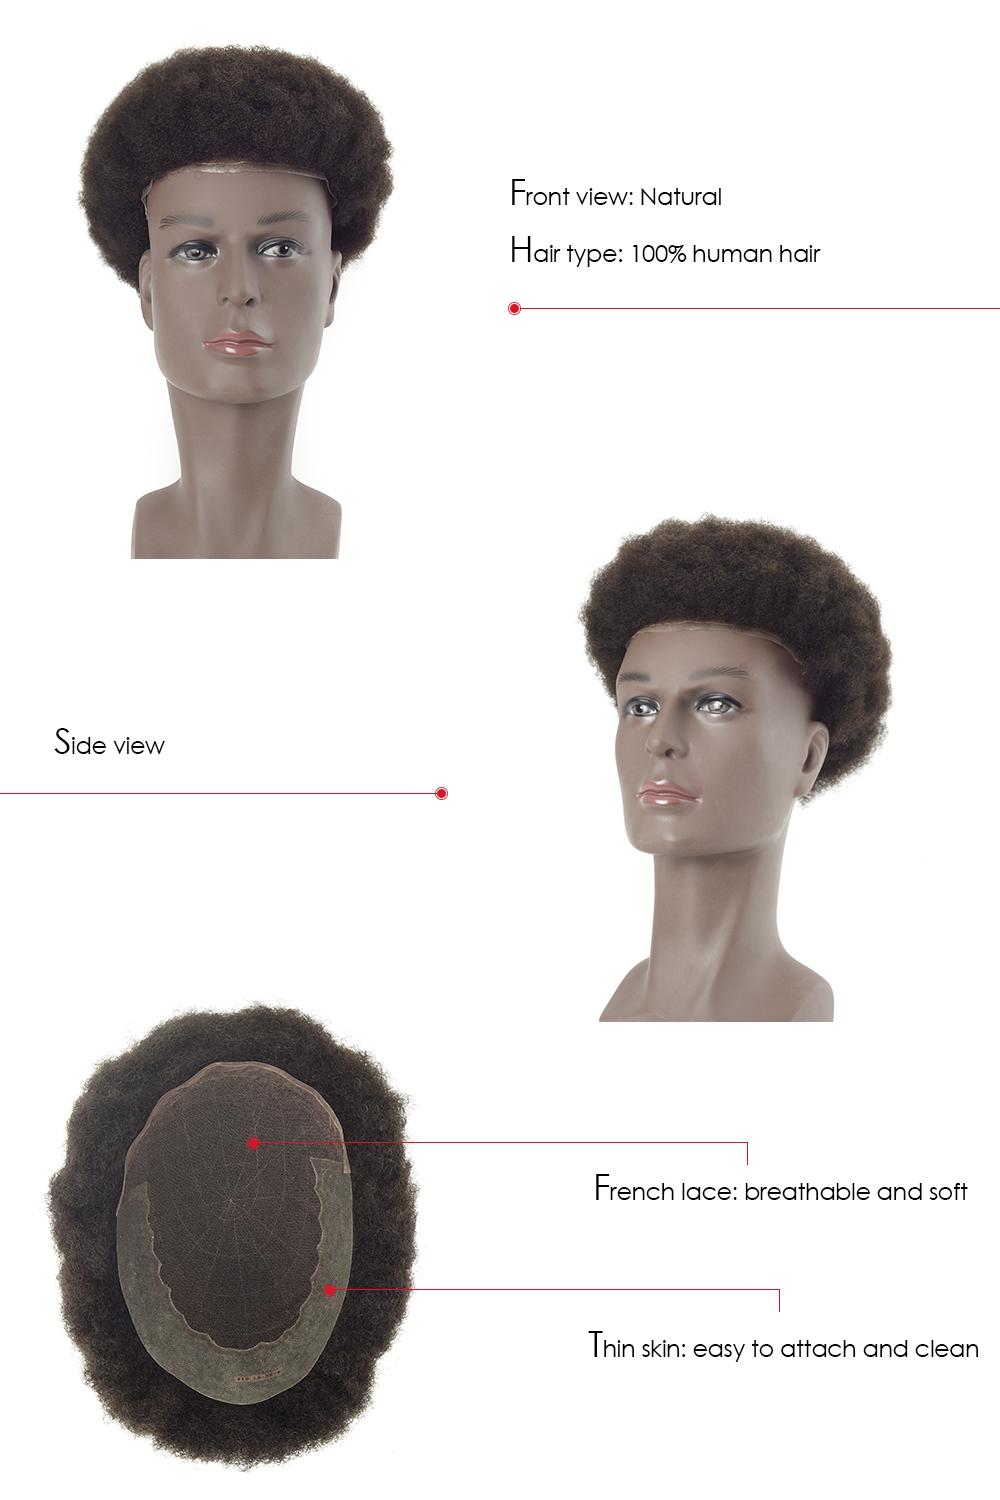 African American hairpiece for men